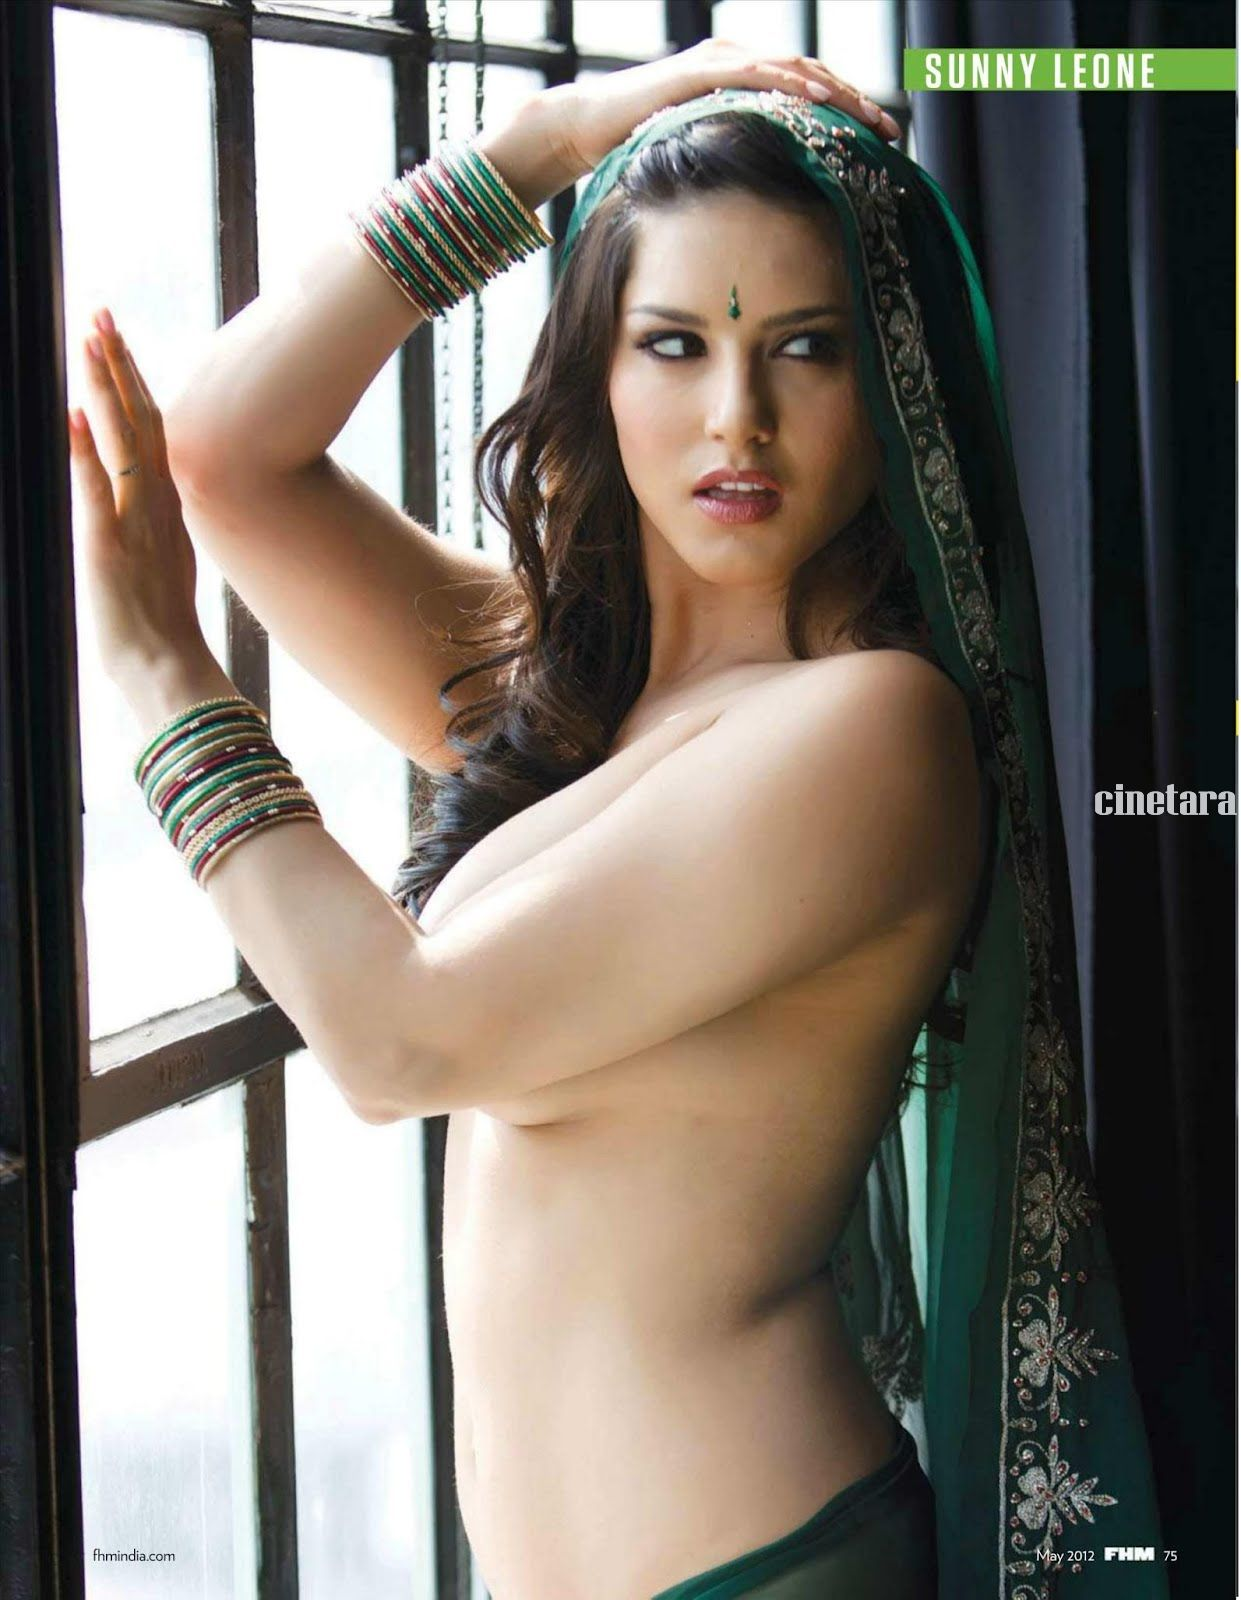 Sunny Leone FHM India Magazine 2012 Photos